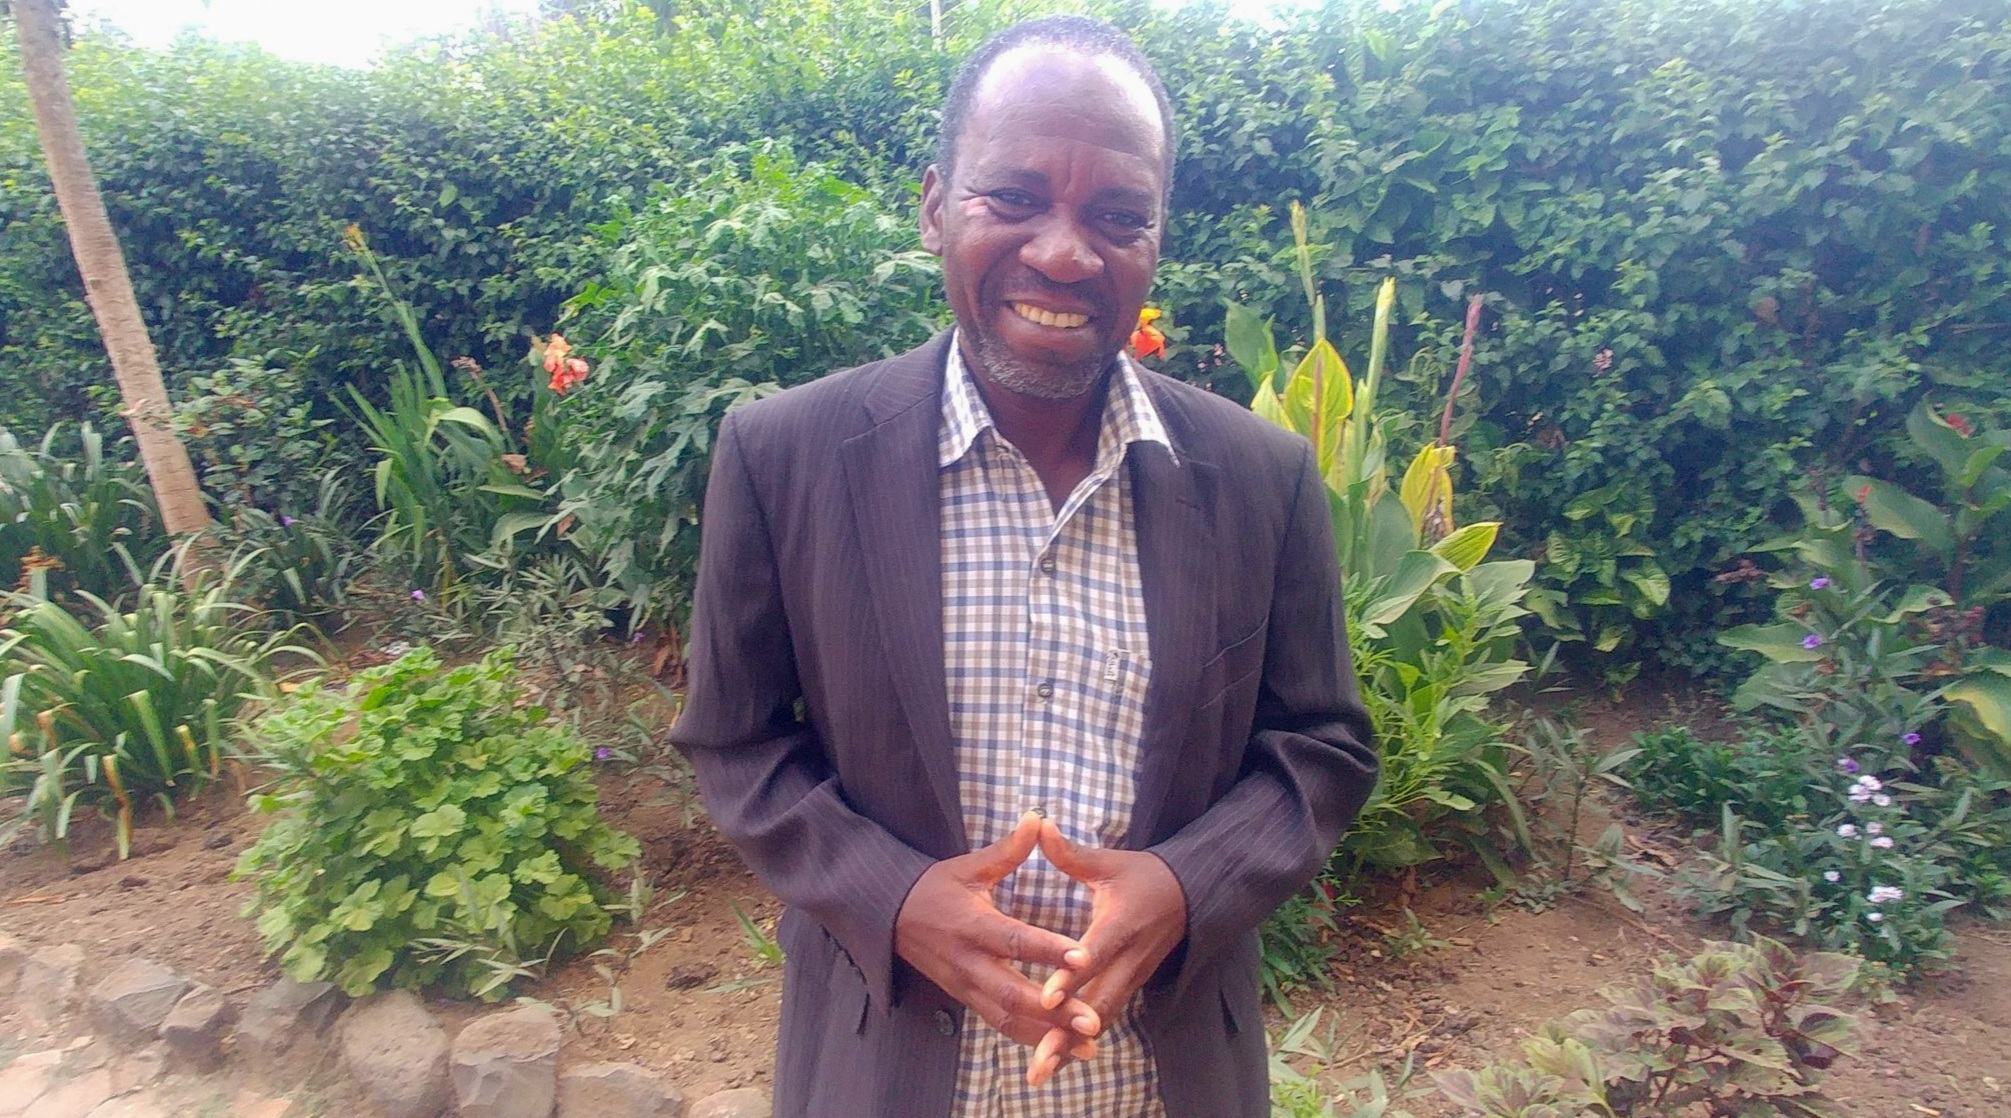 "I was privileged to meet Joseph Alimua during breakfast one morning, a farmer from Uganda. We got to chatting about the week, and he said, ""After this conference, I want to teach the community. I have all this knowledge, but I need to share it. I cannot keep it just to myself. Every one has something. All these farmers have all these resources that they don't know about and aren't using. Manure, animals, plants. Someone just needs to show them. I want to show them what they have."""